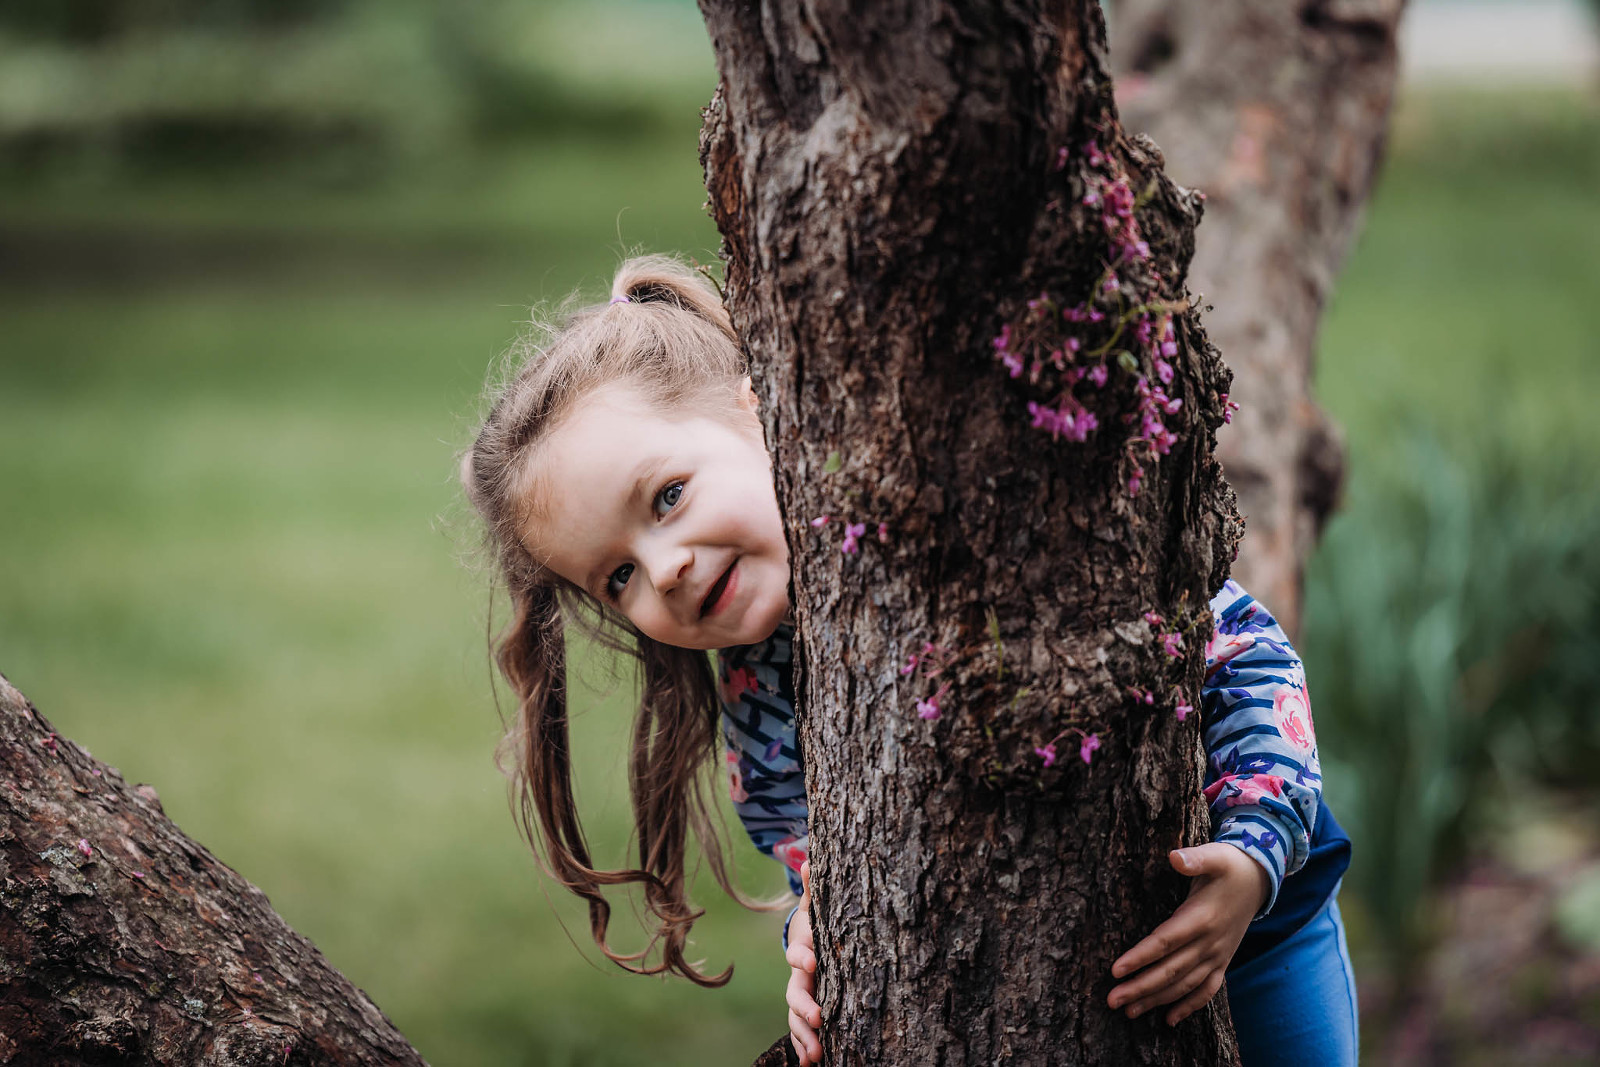 Little girl with pigtails peeking out from behind a tree at Foster Park in Fort Wayne, Indiana during outdoor spring family session